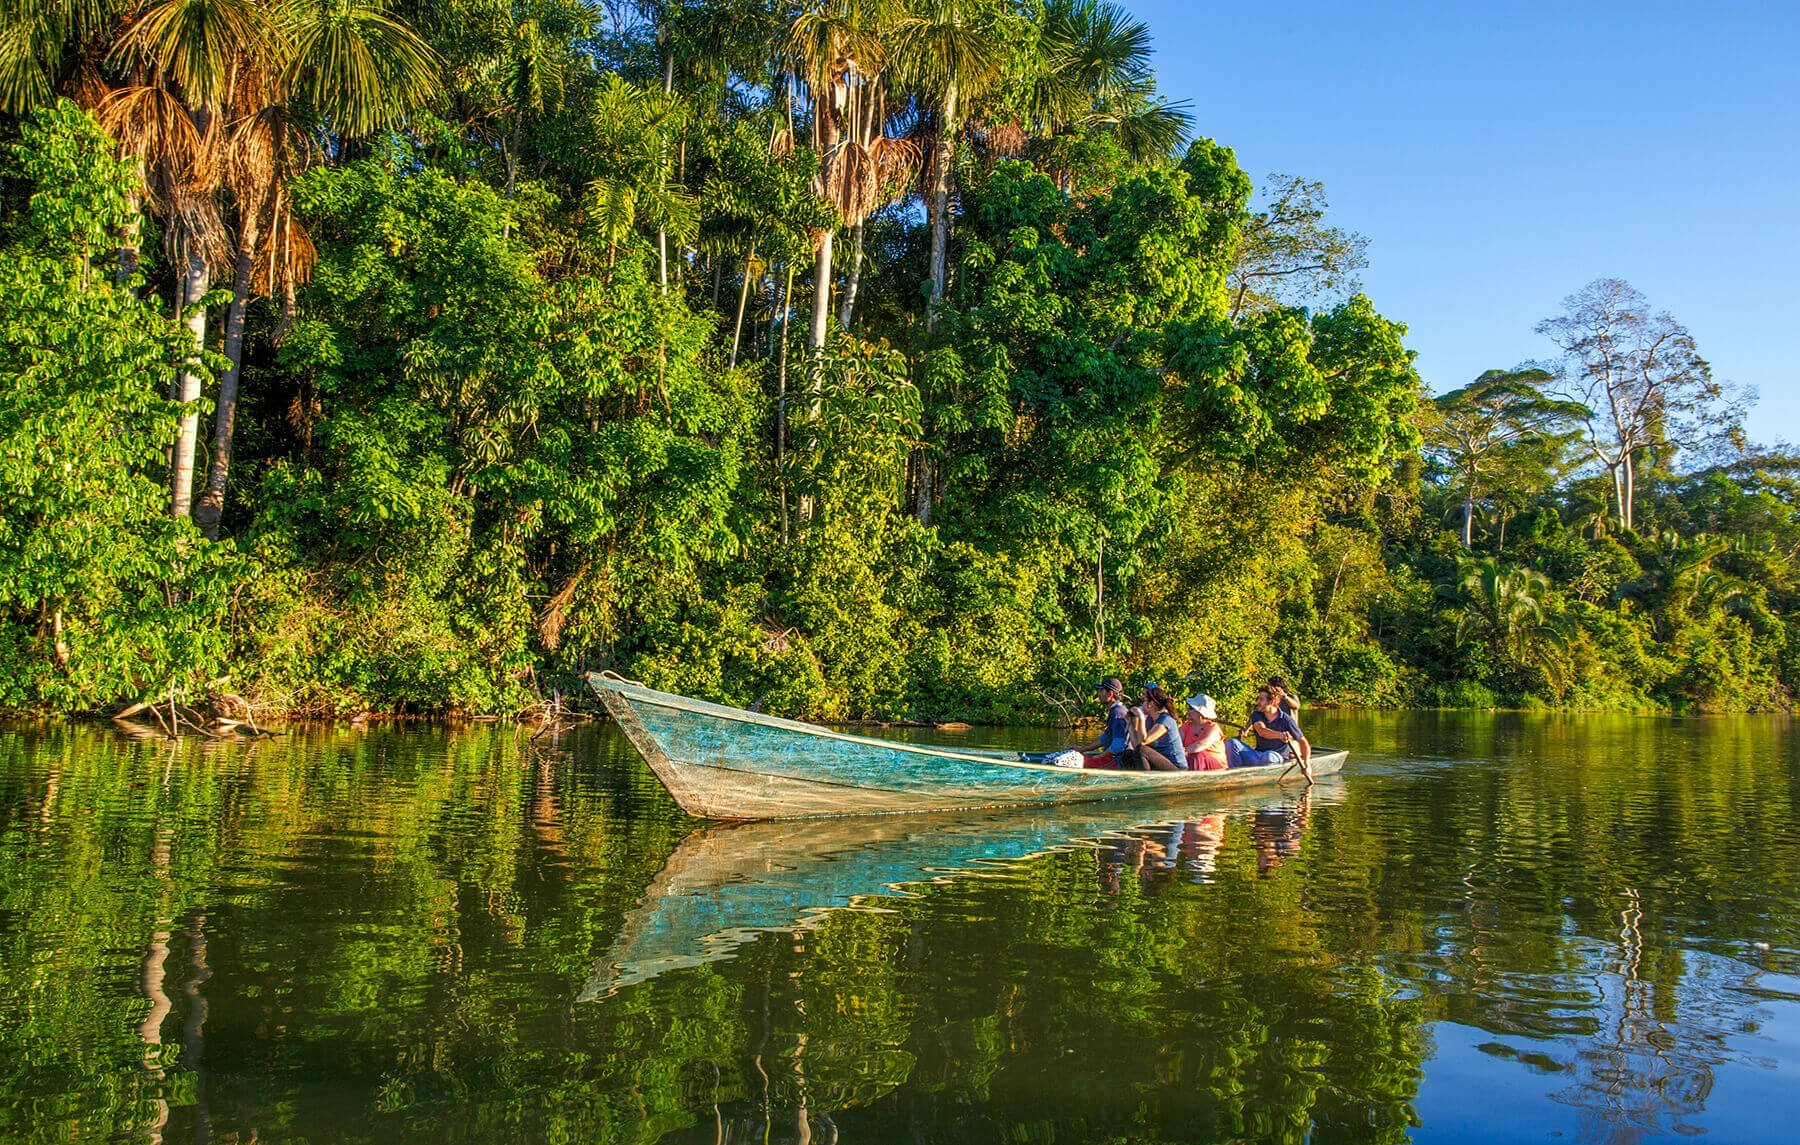 Boat trip in the Amazon at Tambopata National Reserve in Peru